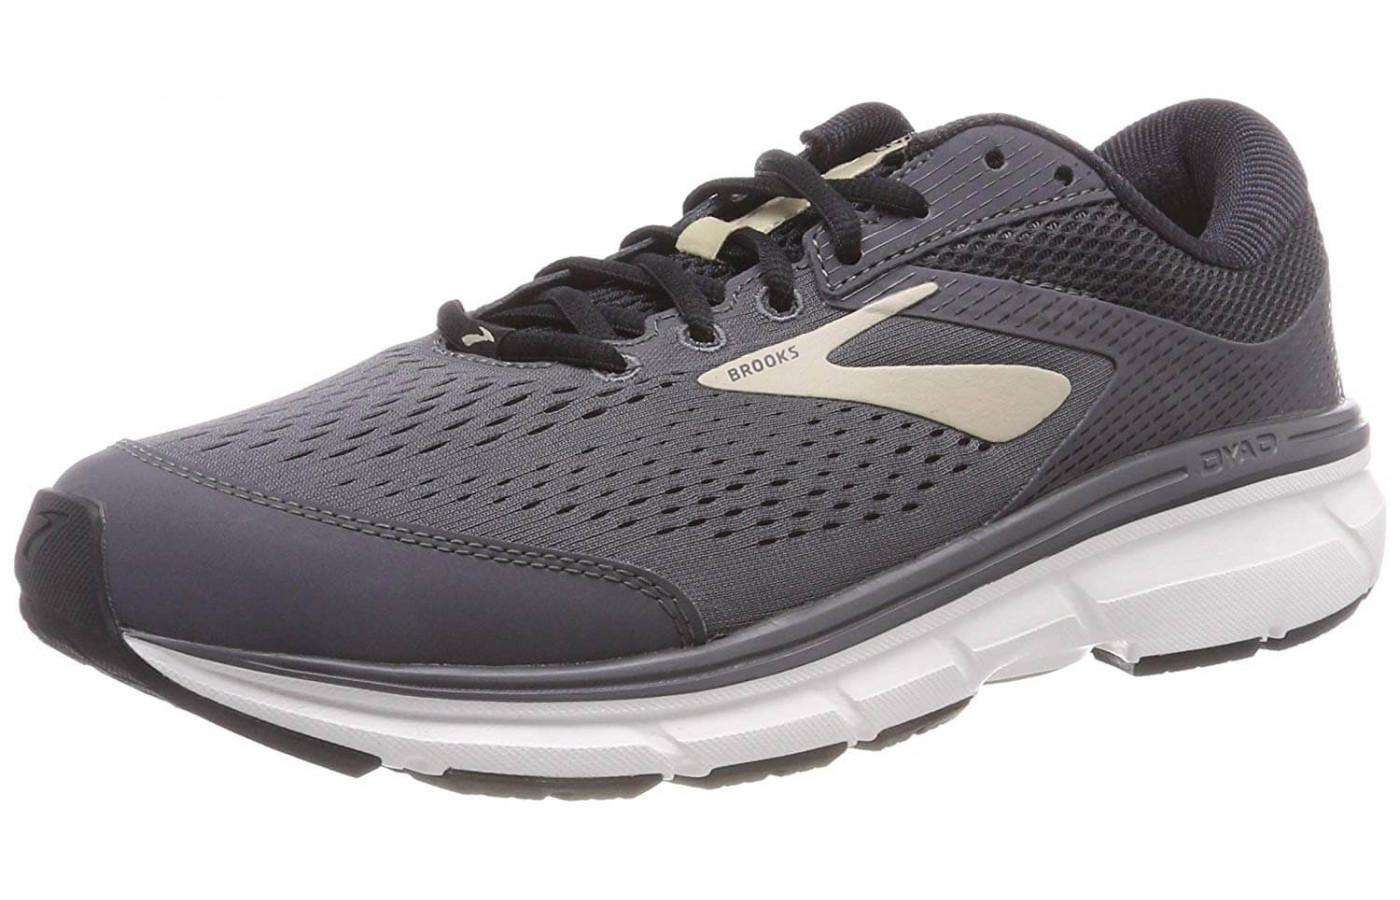 f789e9c5ebb Brooks Dyad 10 Reviewed - To Buy or Not in May 2019